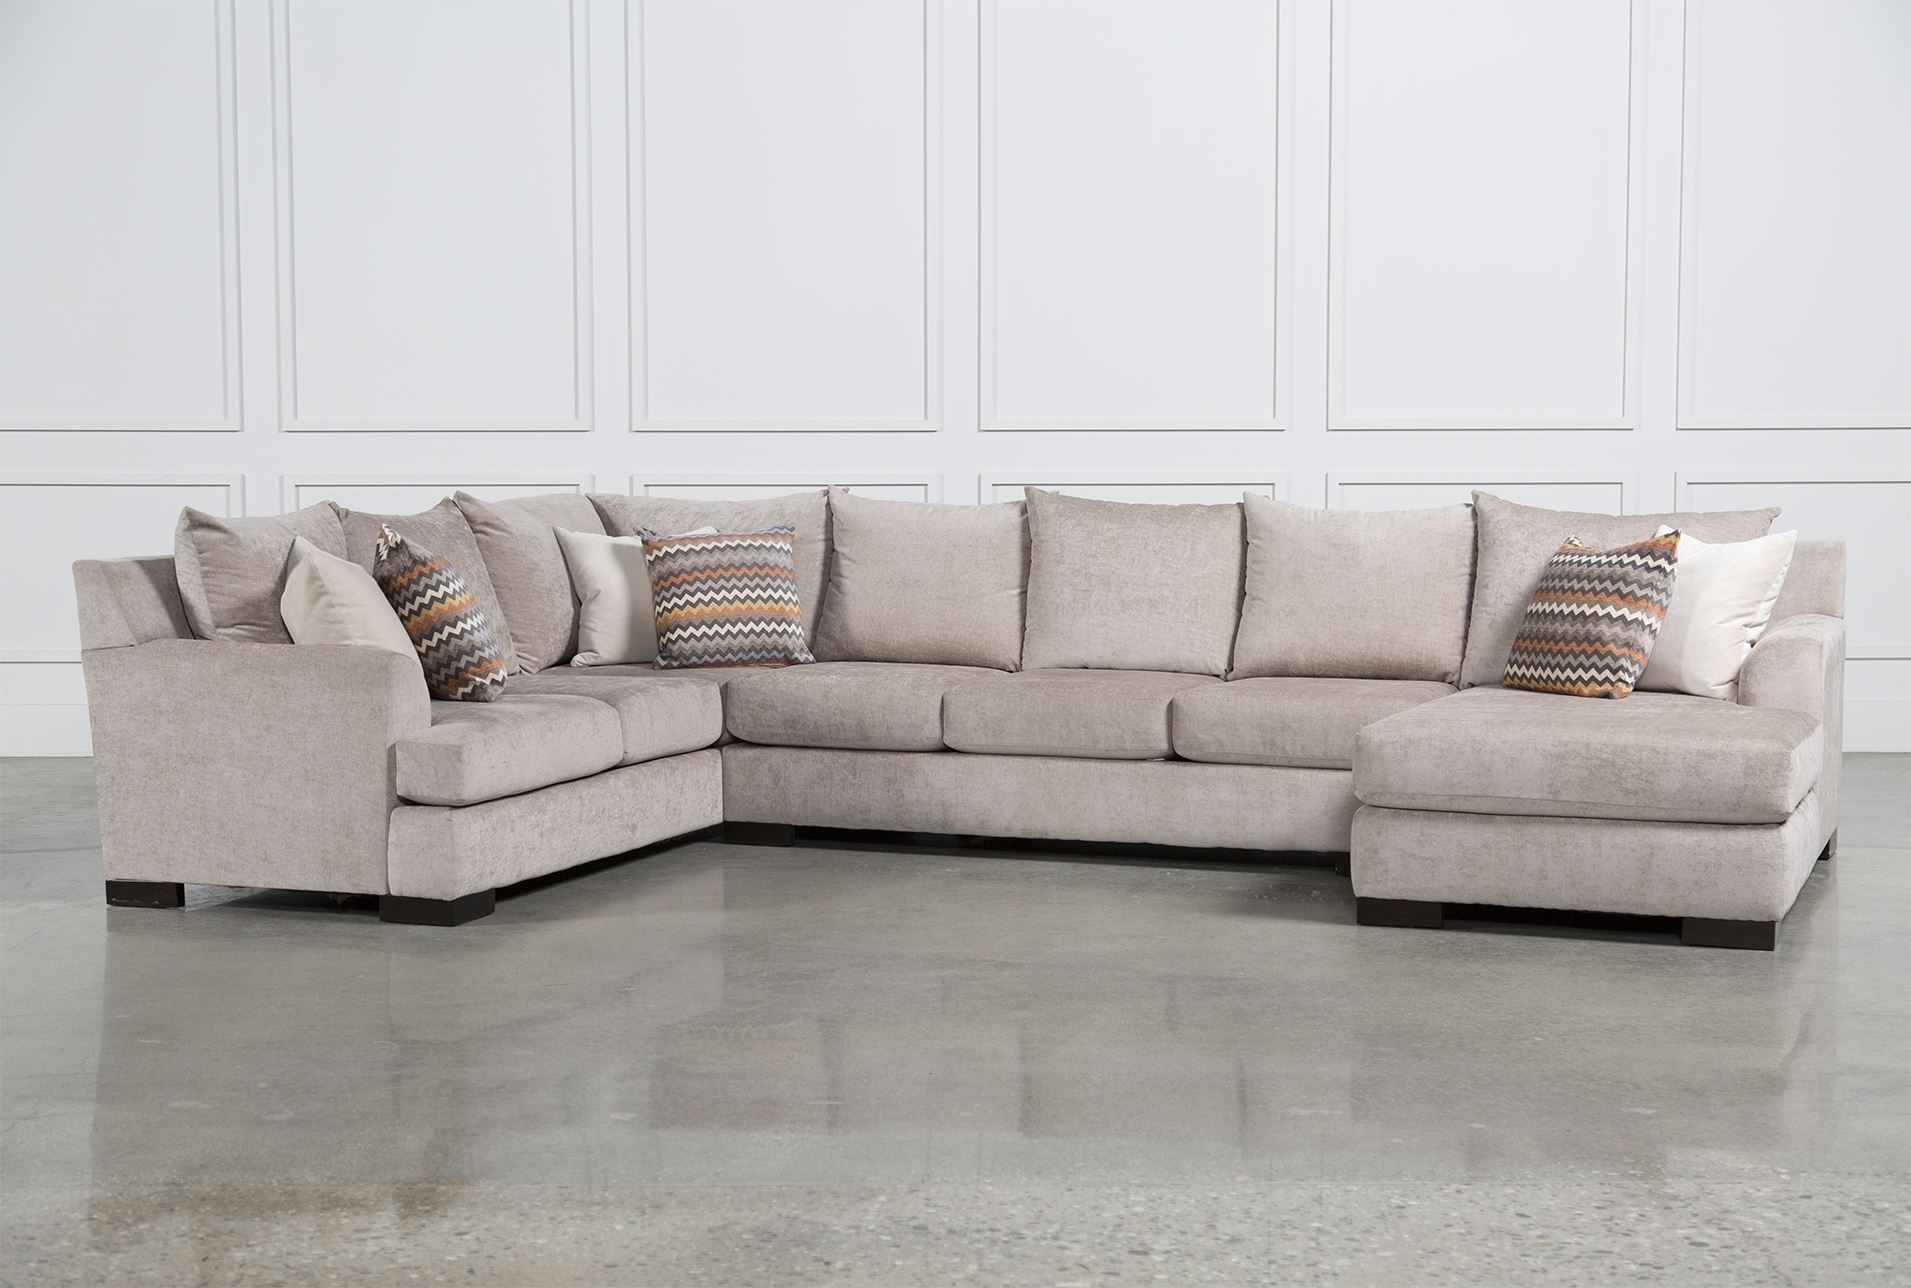 Ellison 3 Piece Sectional; Living Spaces, $99 Delivery; 3 Piece Regarding Living Spaces Sectional Sofas (Photo 10 of 10)